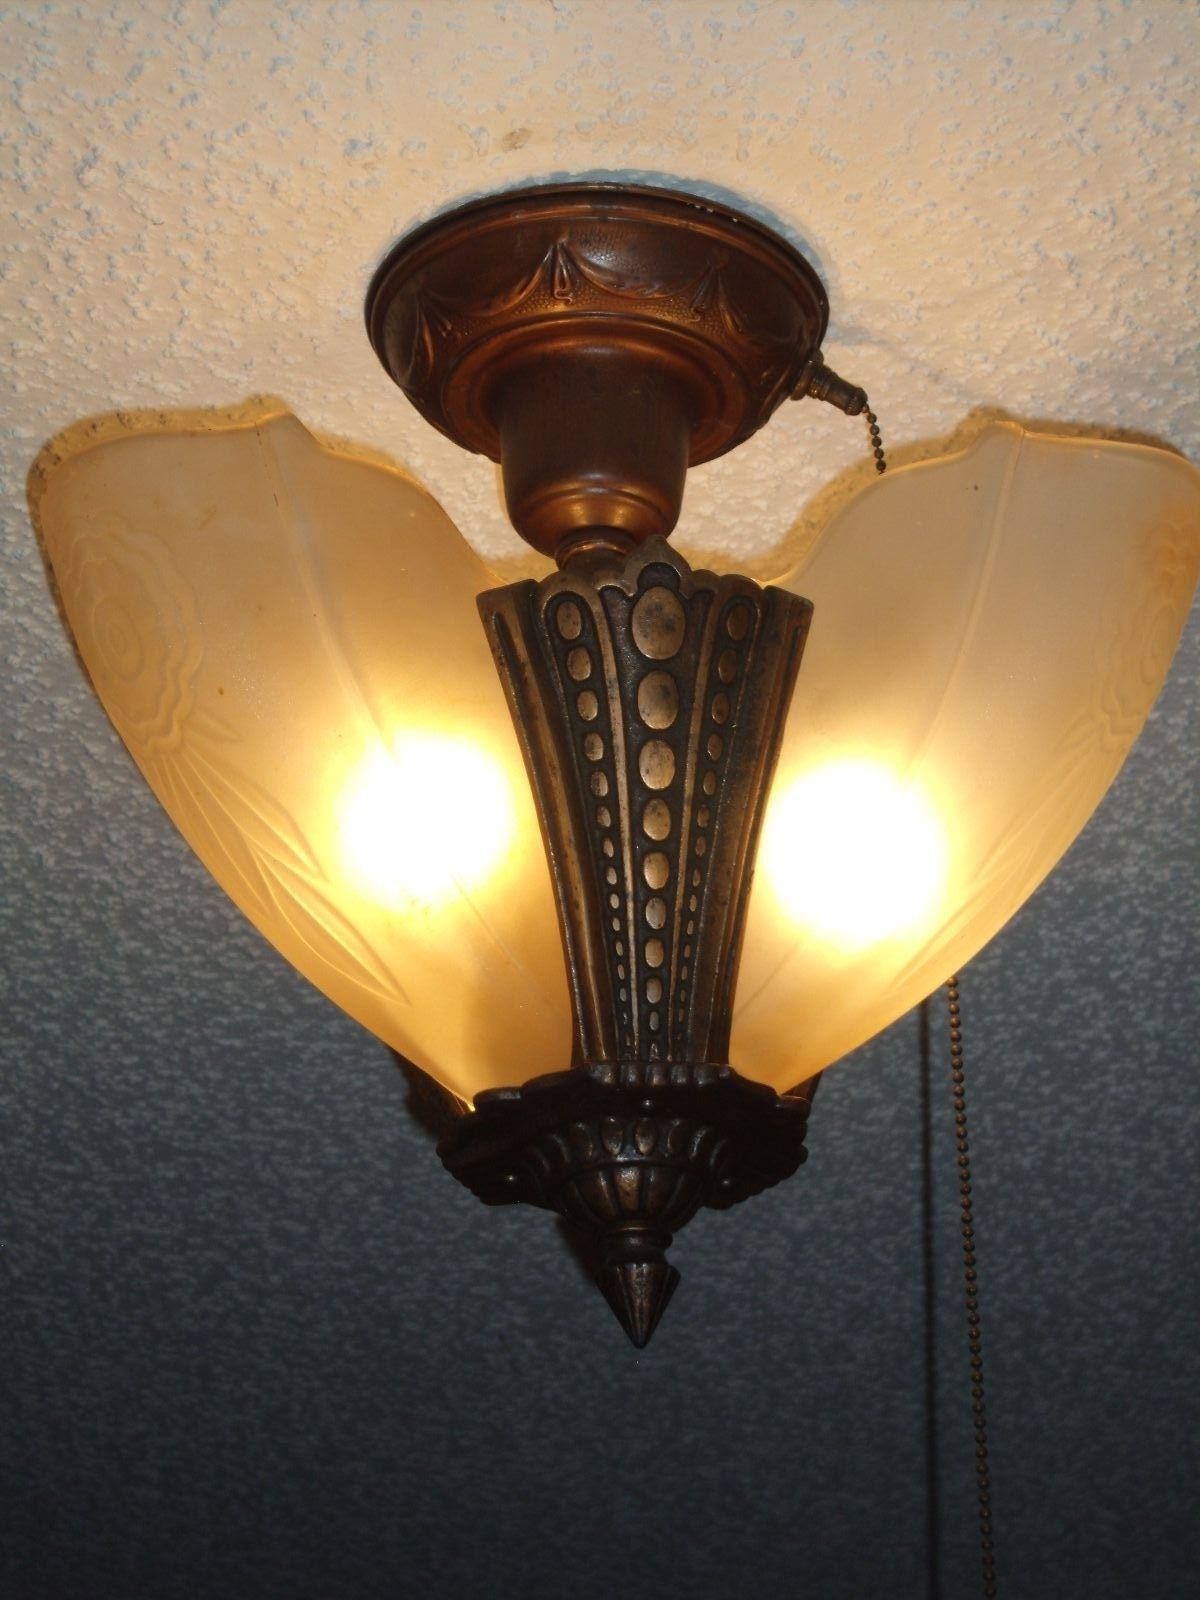 Antique Slip Shade Ceiling Lamp 3 shades with Original Pull cord